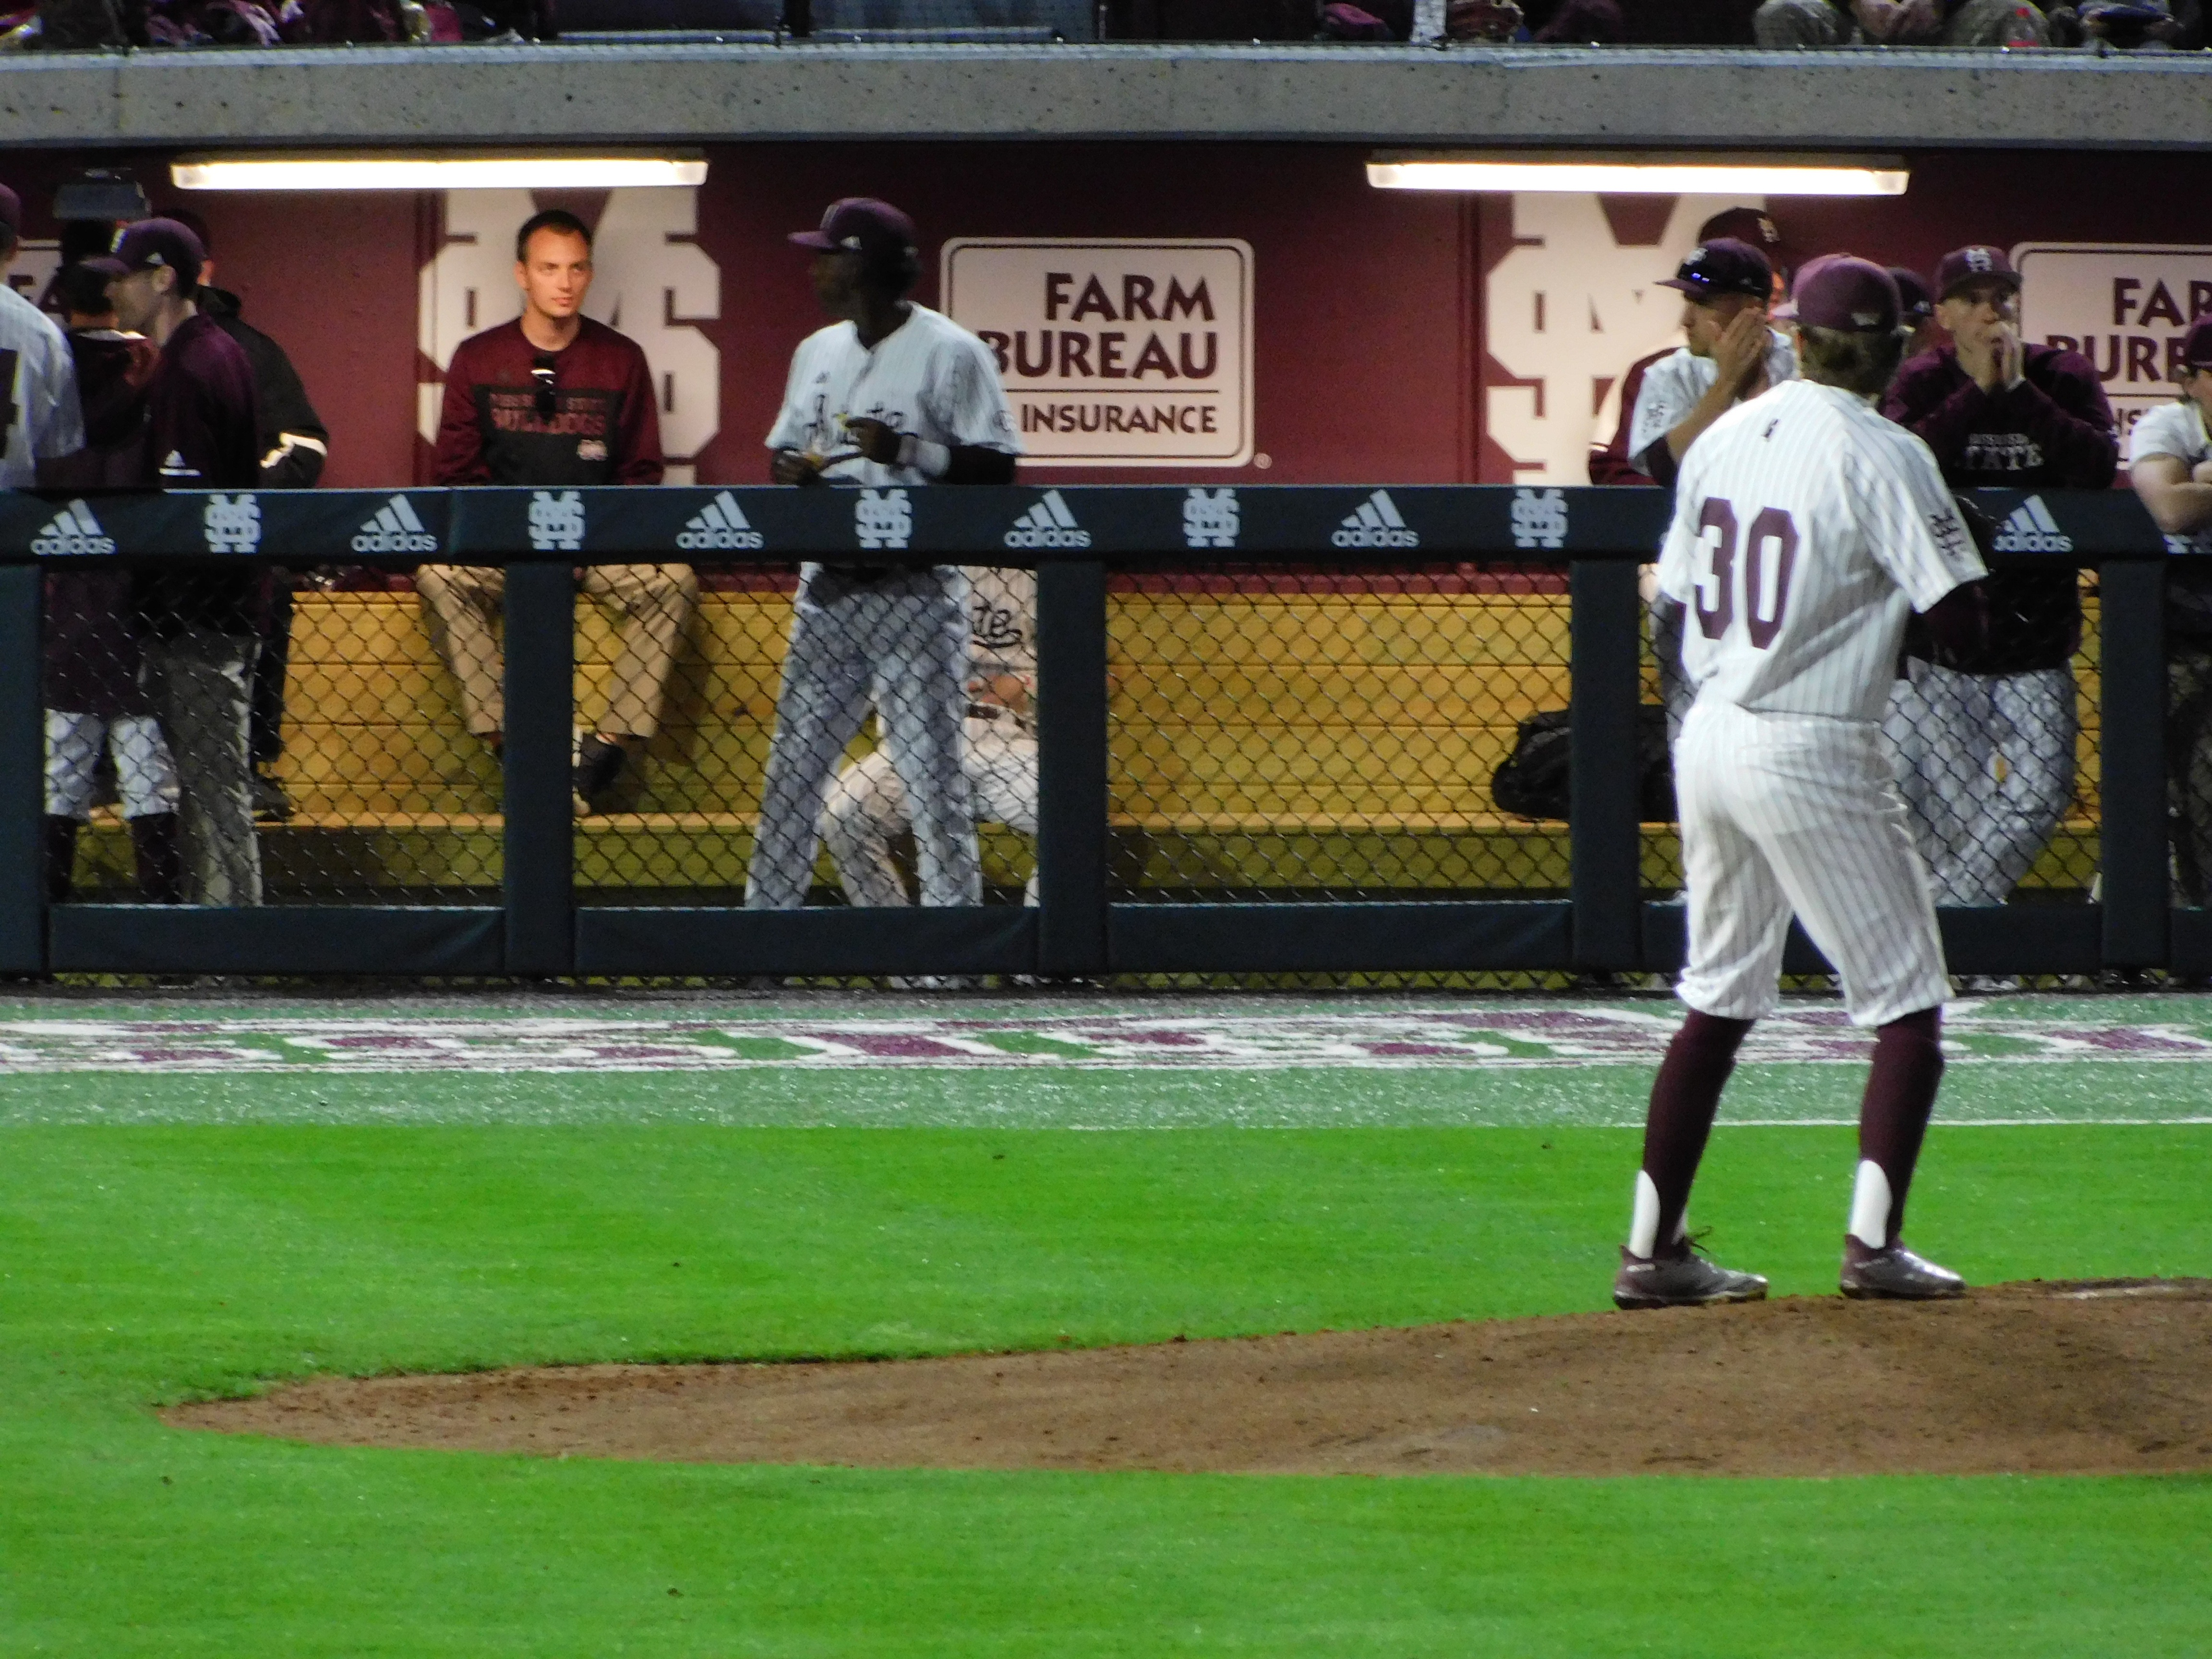 Pics taken by Landon Young of the new Dudy Noble Field